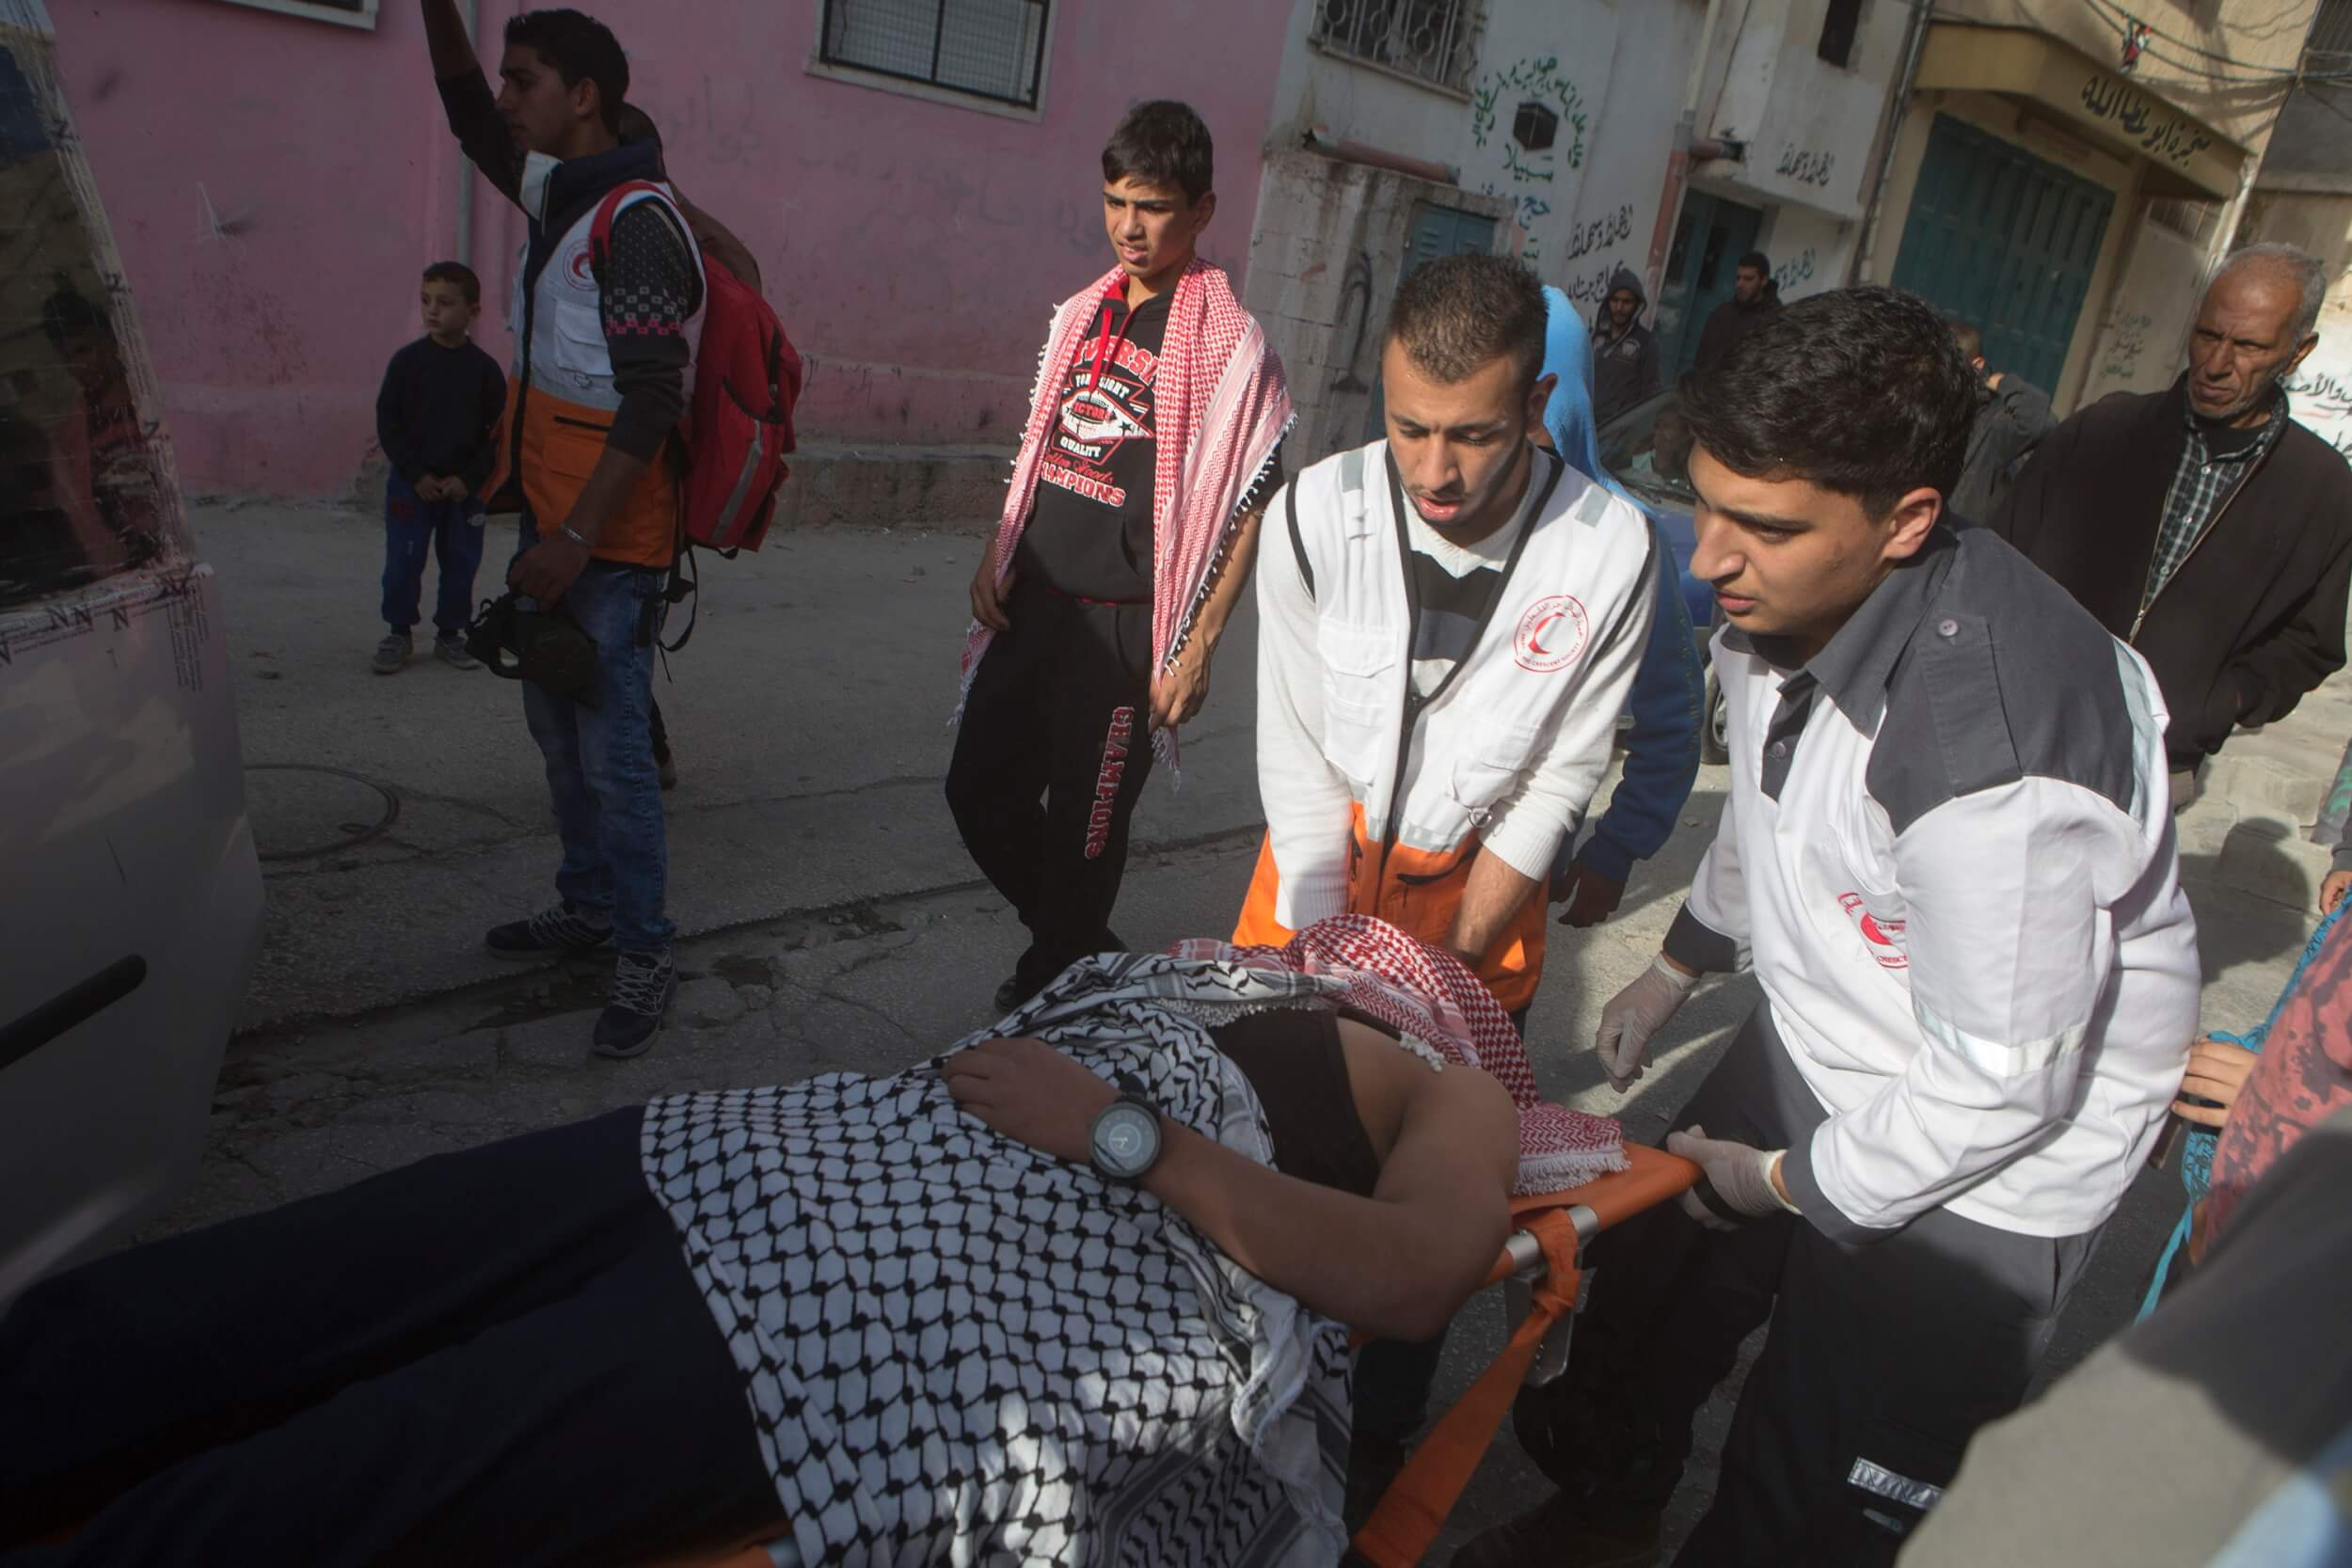 Injury to Palestinian demonstrator, photo by Anne Paq